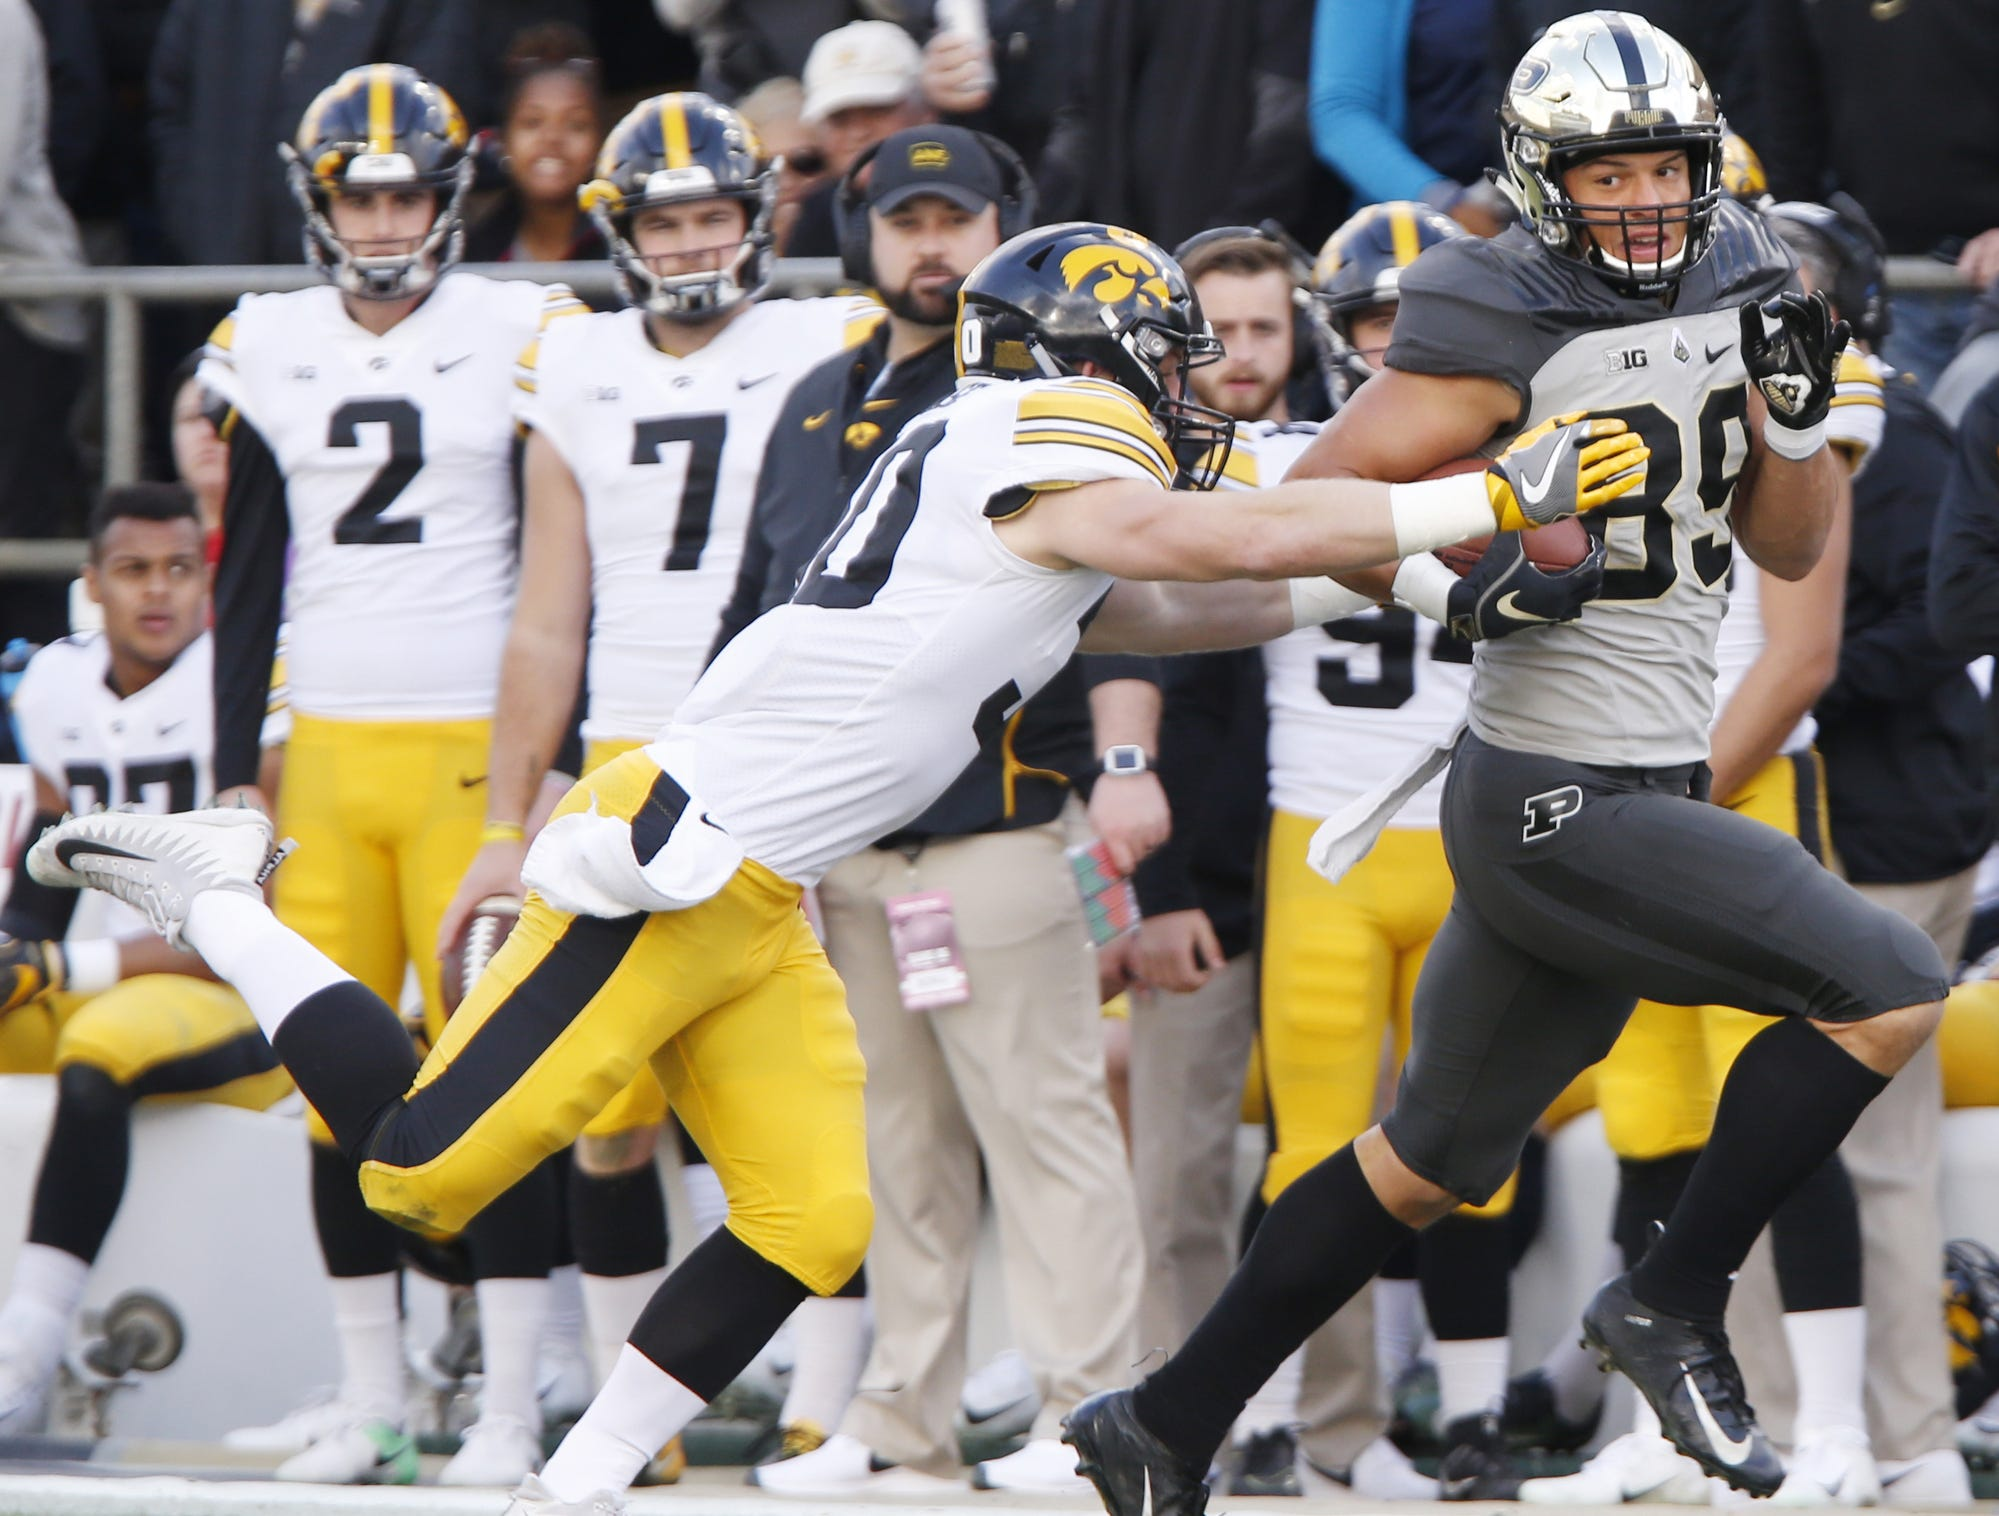 Purdue tight end Brycen Hopkins with a pass reception in the first half against Iowa Saturday, November 3, 2018, at Ross-Ade Stadium.